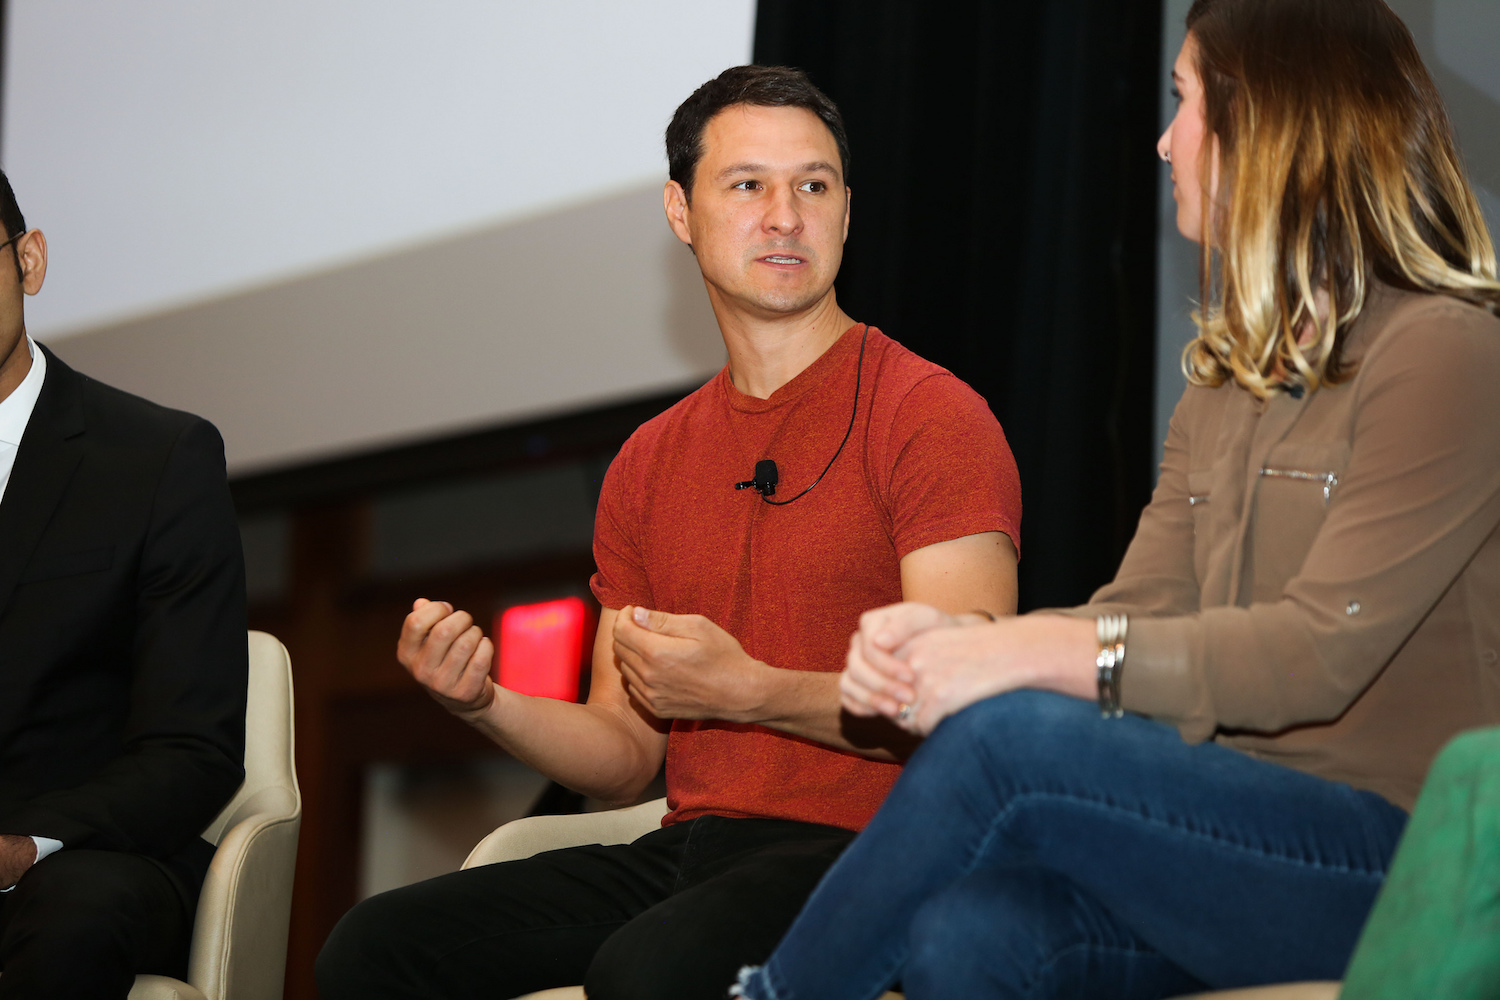 Jed_McCaleb_Consensus_2018_Flickr_CoinDesk_archive.jpg